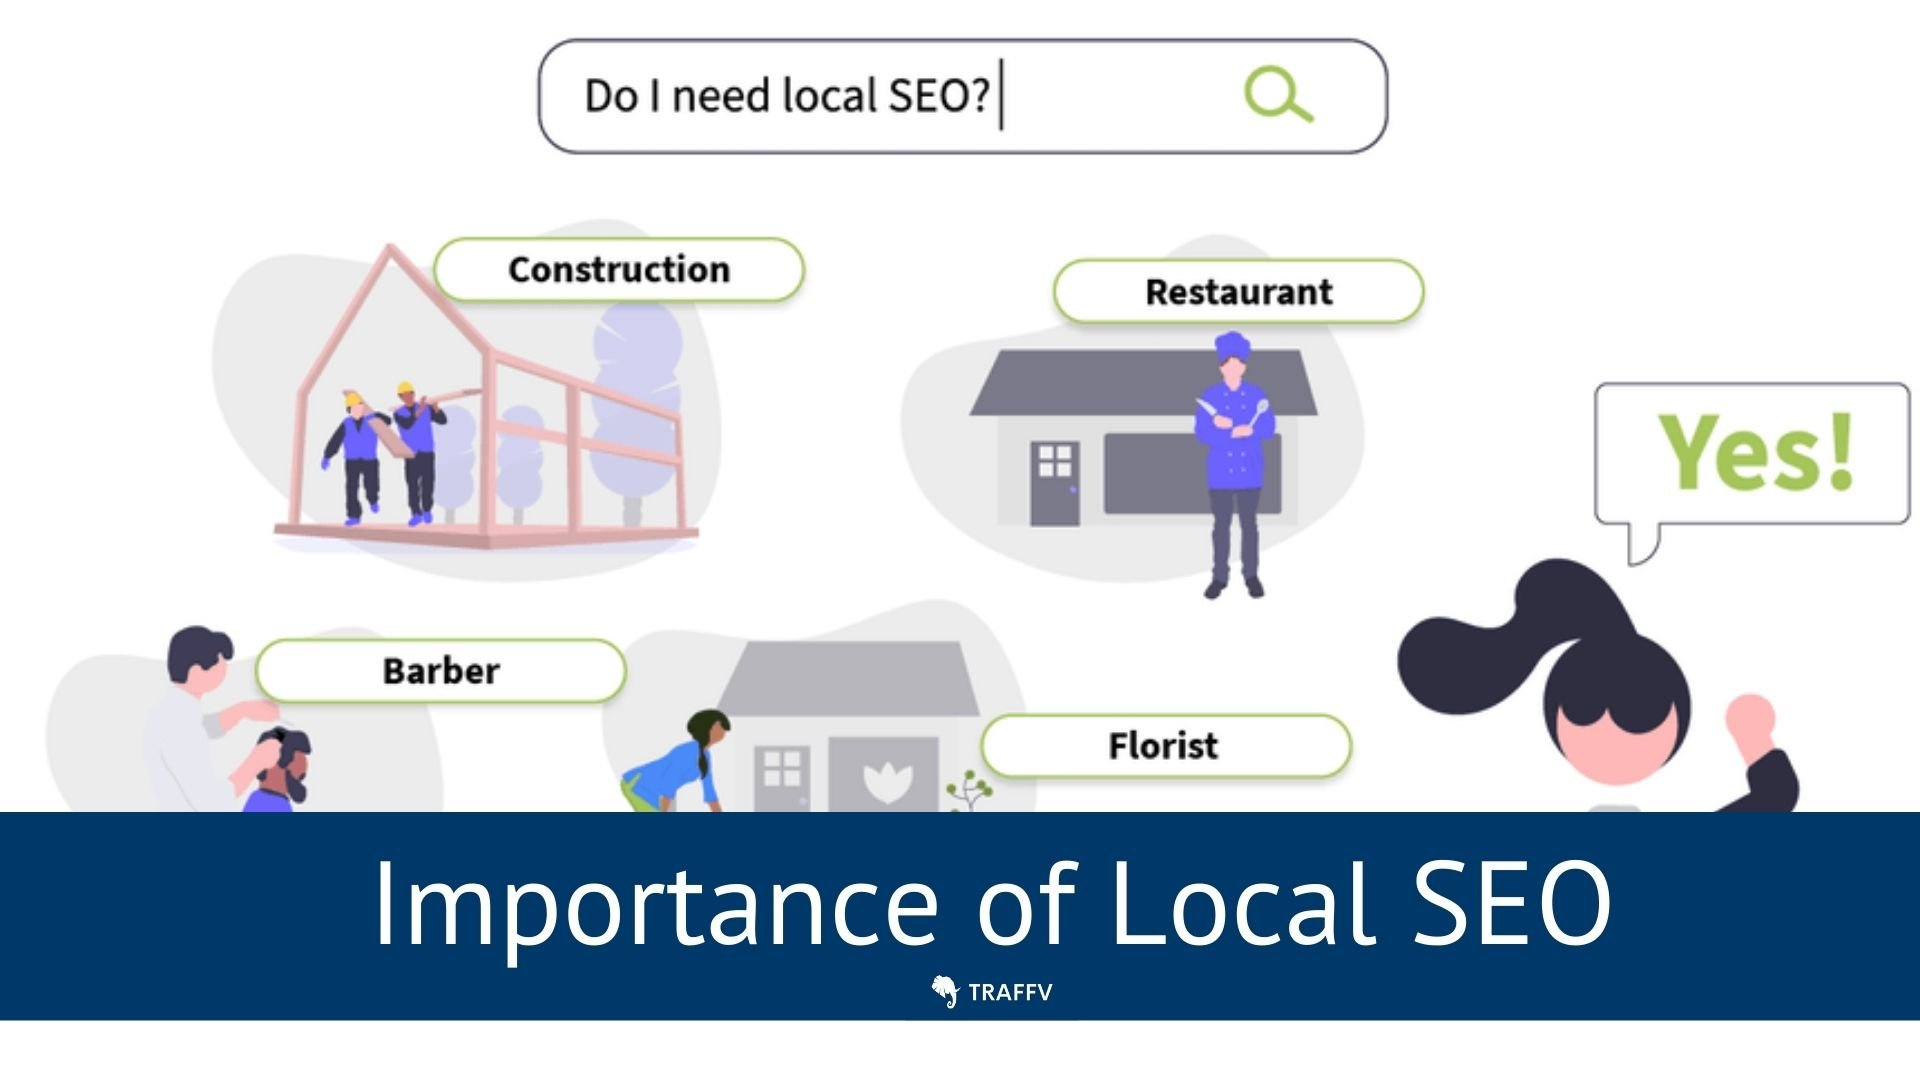 importance of Local Search Engine Optimization in Singapore